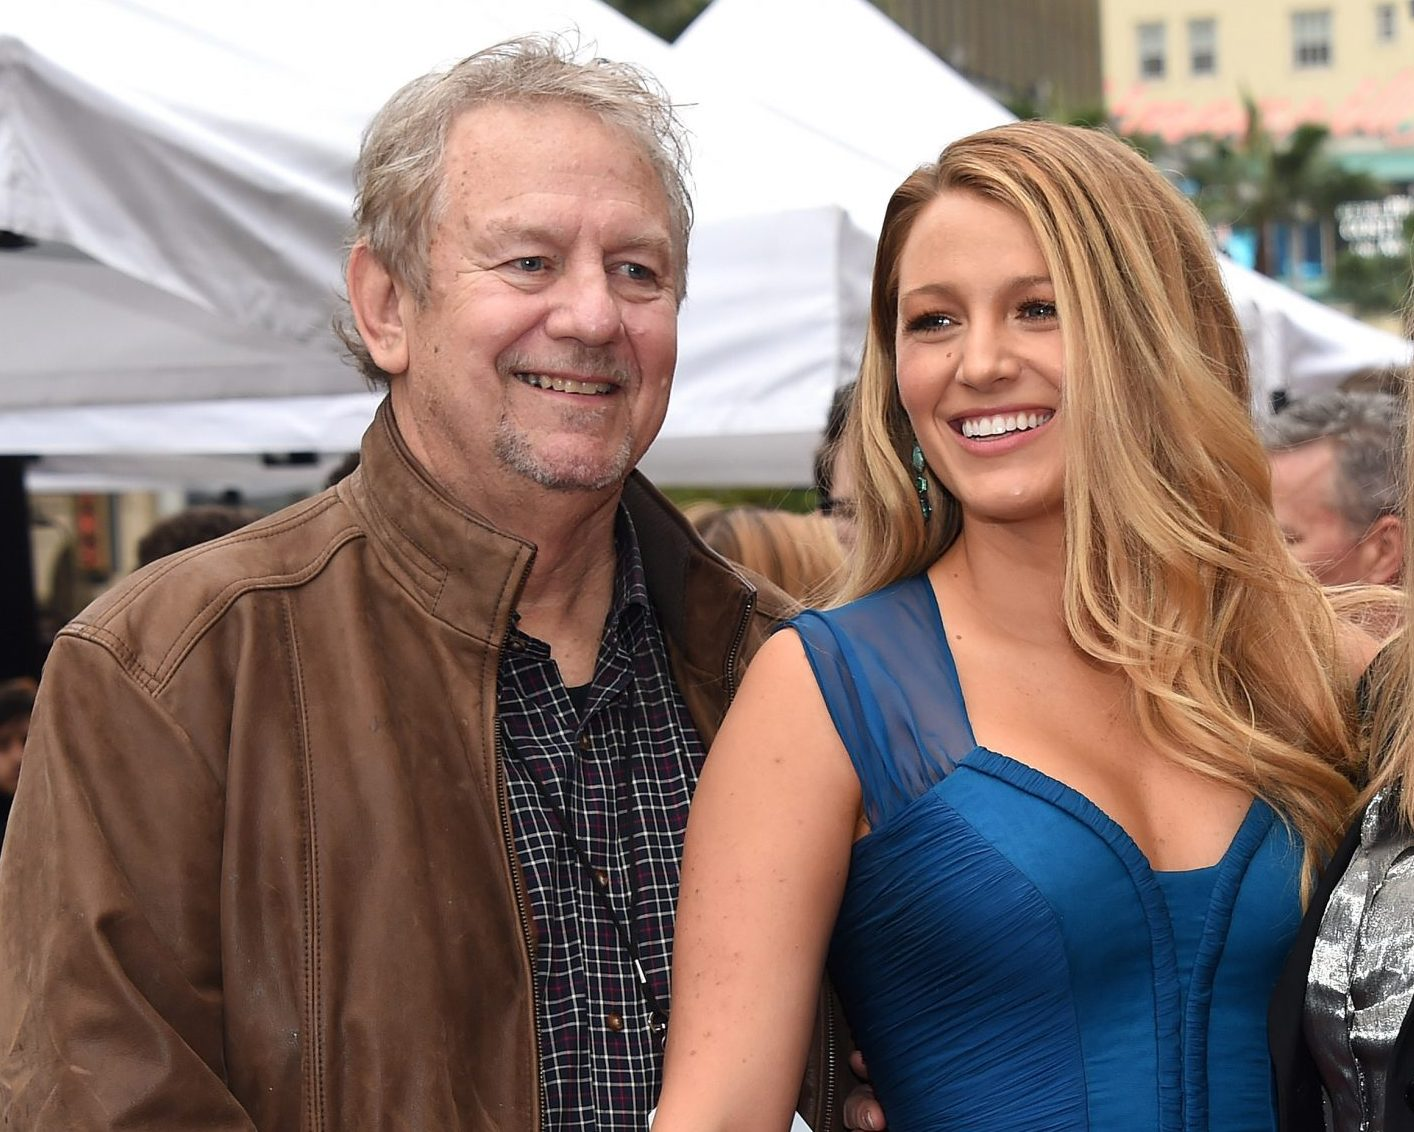 Ernie Lively and Blake Lively at a red carpet event. They are holding hands and both smiling.